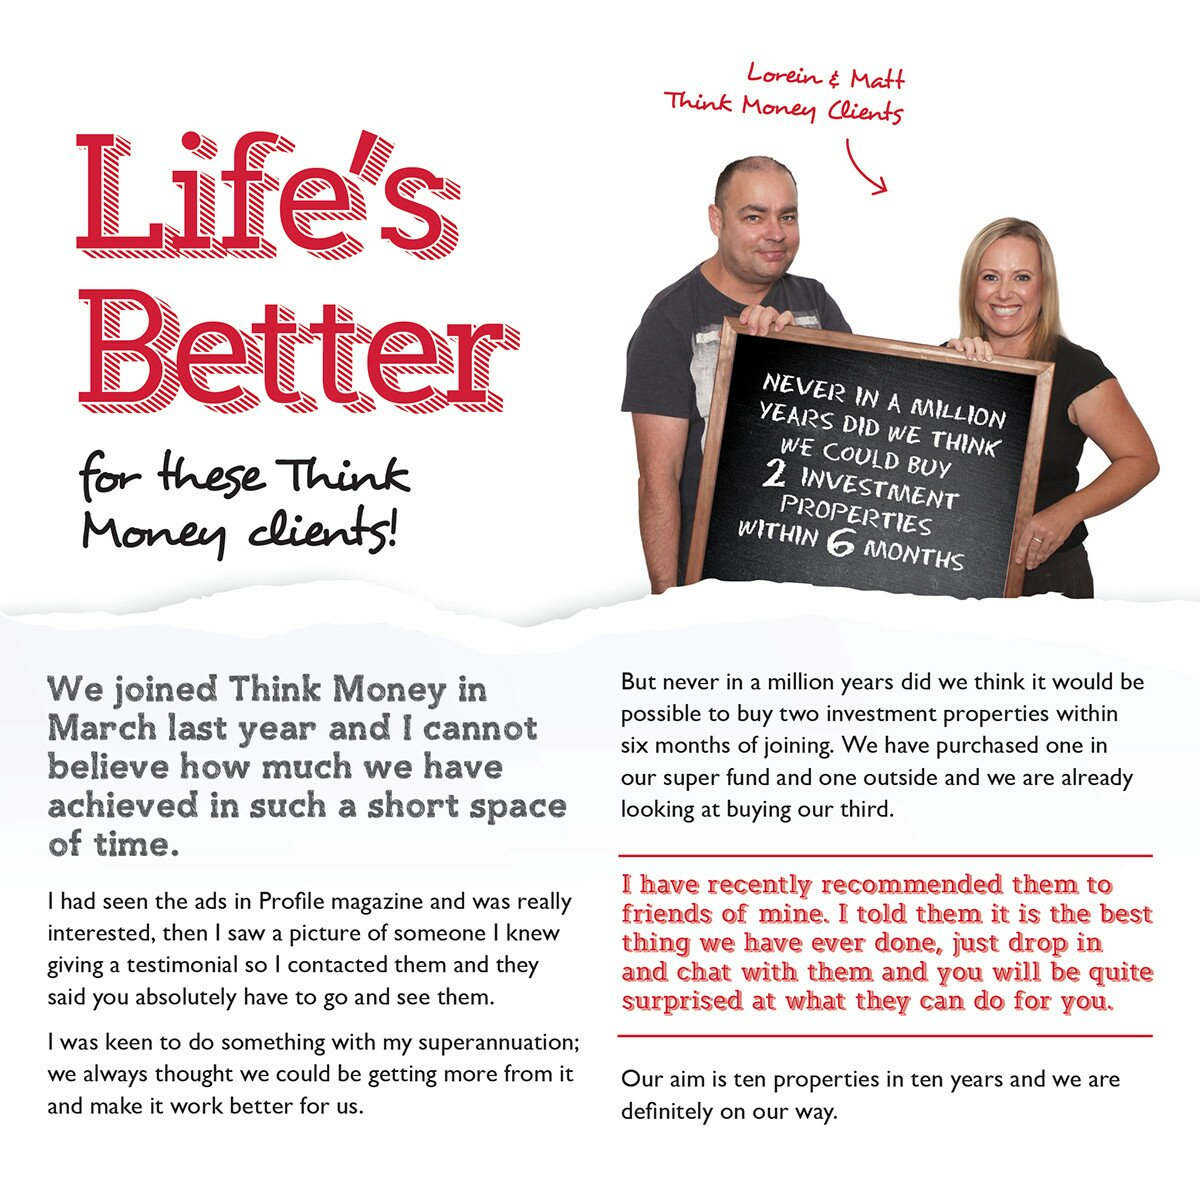 Profile Magazine Online LifesBetter IF YOU THINK YOU CAN'T CREATE WEALTH FROM EQUITY... THINK AGAIN